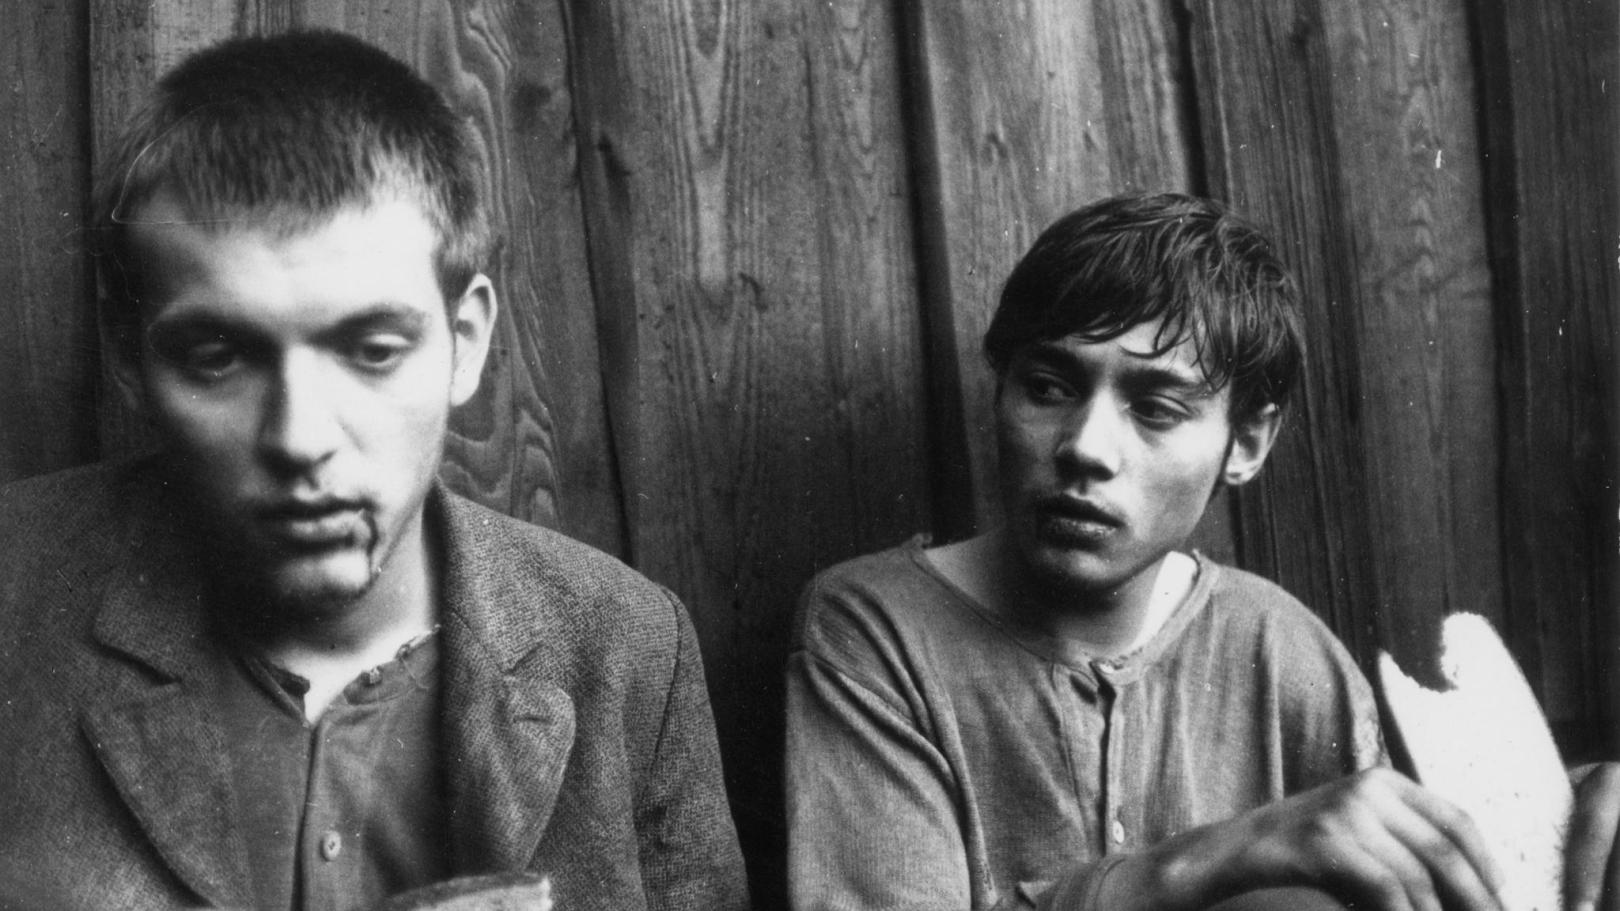 Films in London today: DIAMONDS OF THE NIGHT, part of CZECH NEW WAVE at Close-Up (21 MAY).